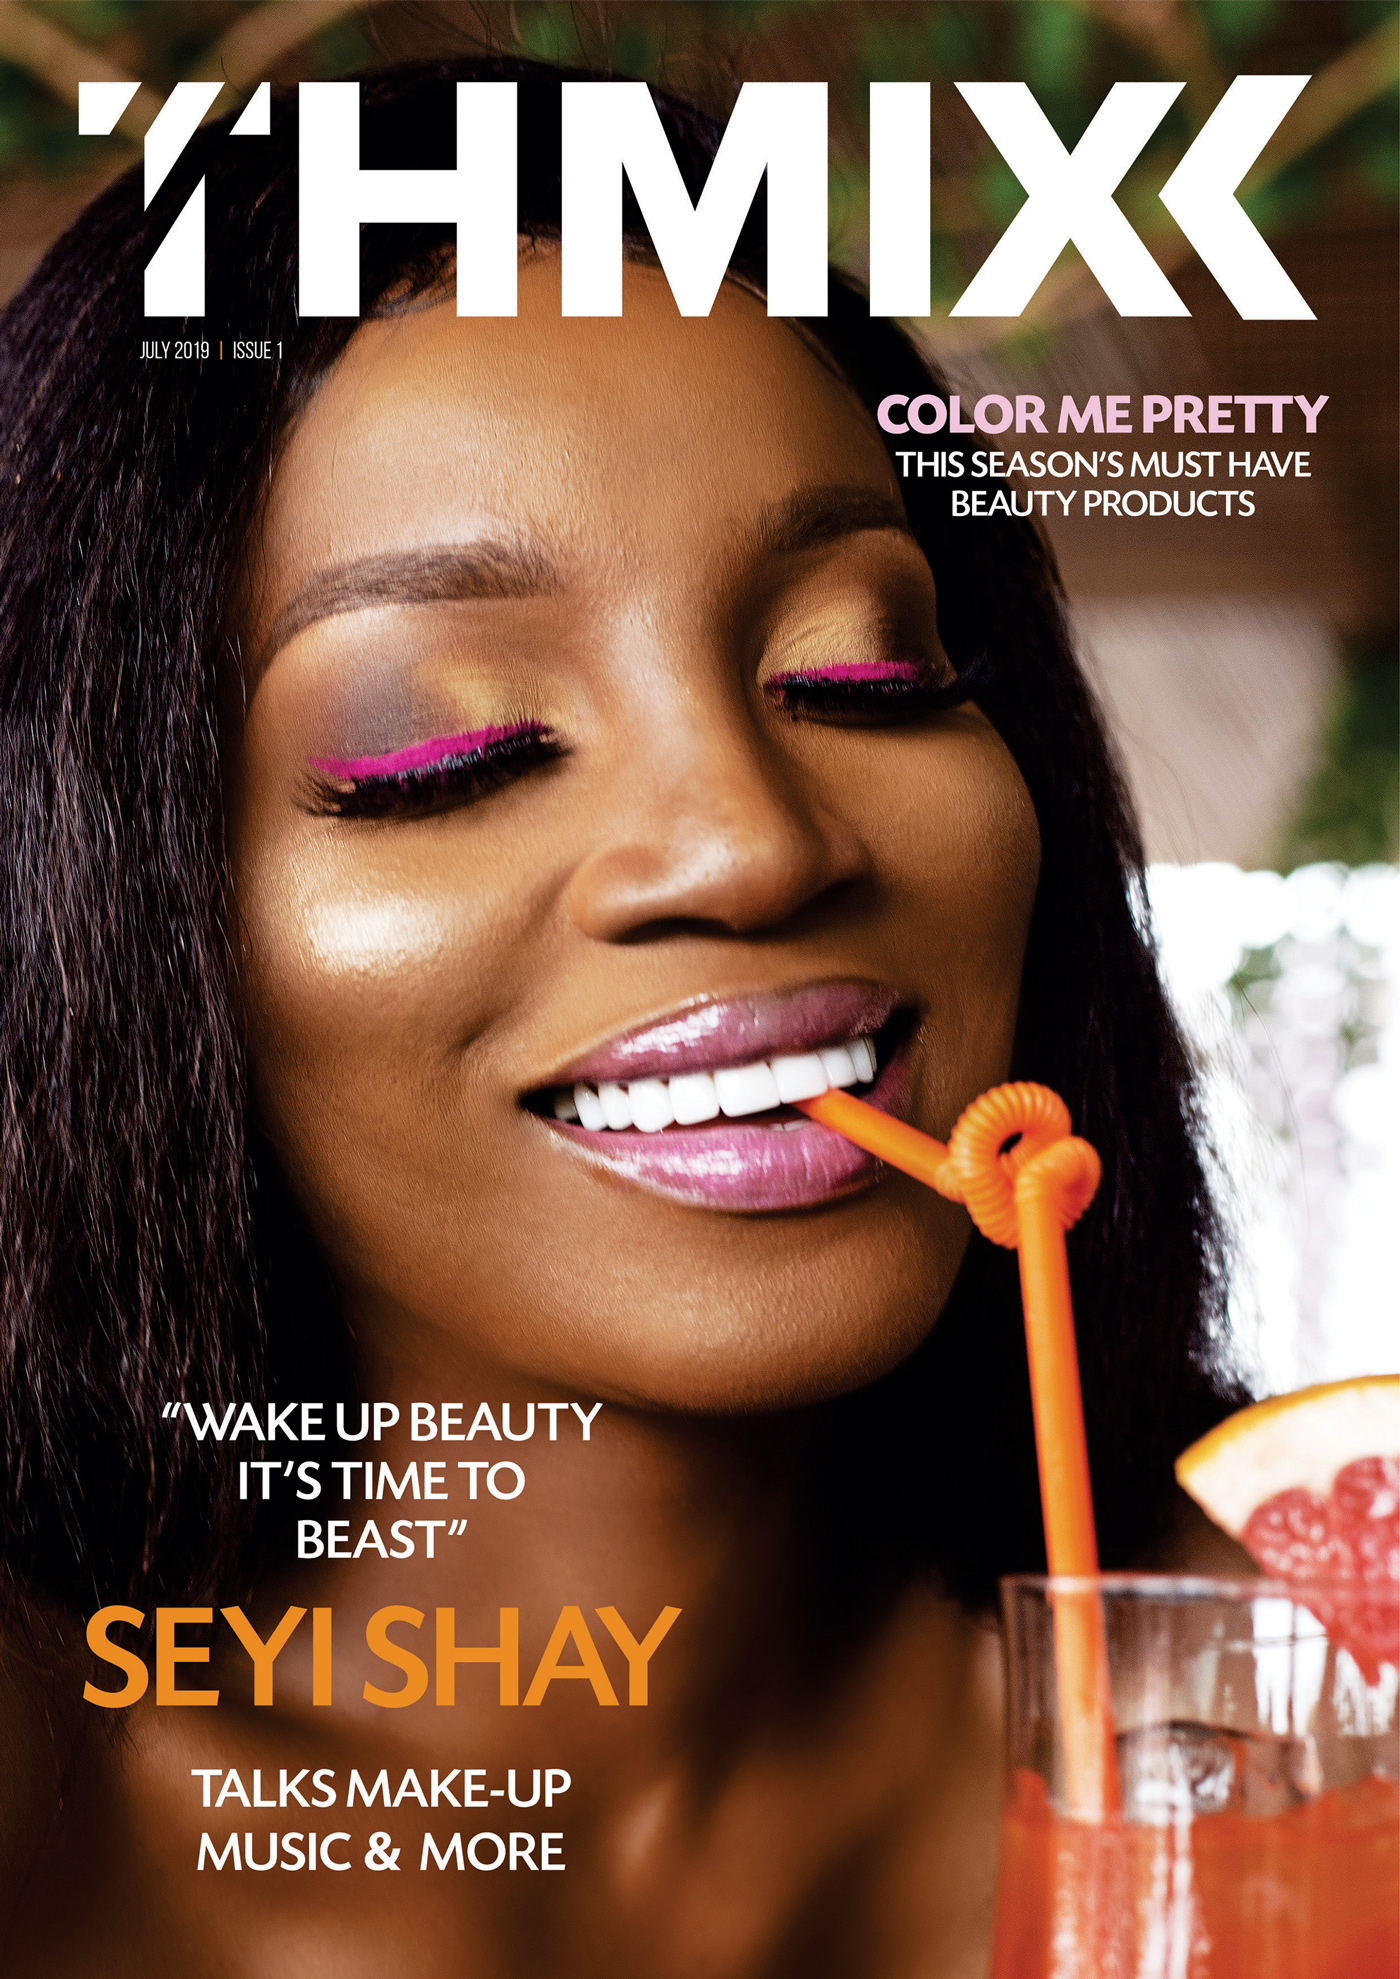 Seyi Shay is the Stunning Cover Girl for Thimxx Magazine's Maiden Edition